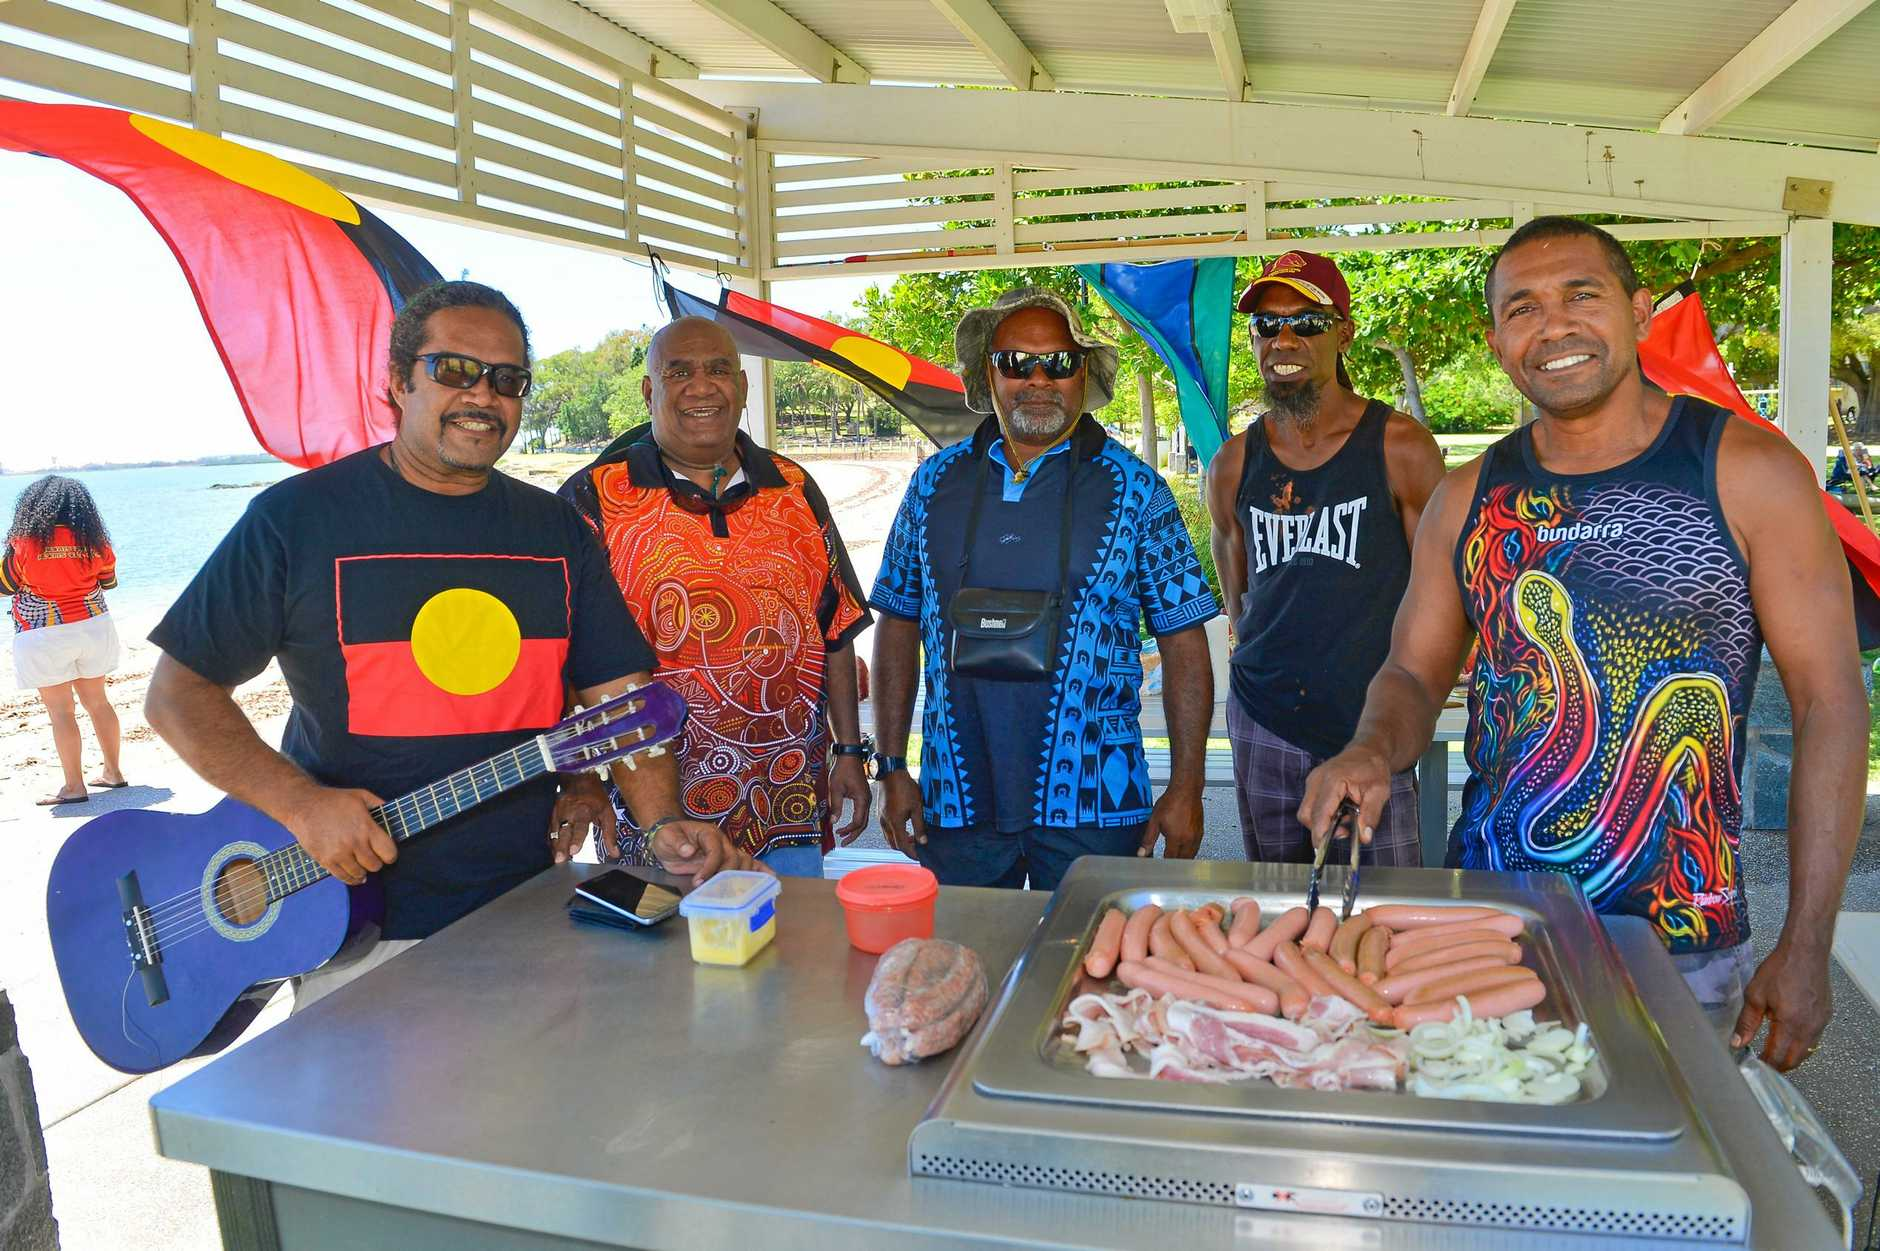 Conrad Ingra, Mick Eggmolesse, James Benjamine, Adam Bond and Tinoy Canendo at Barney Point on Australia day.